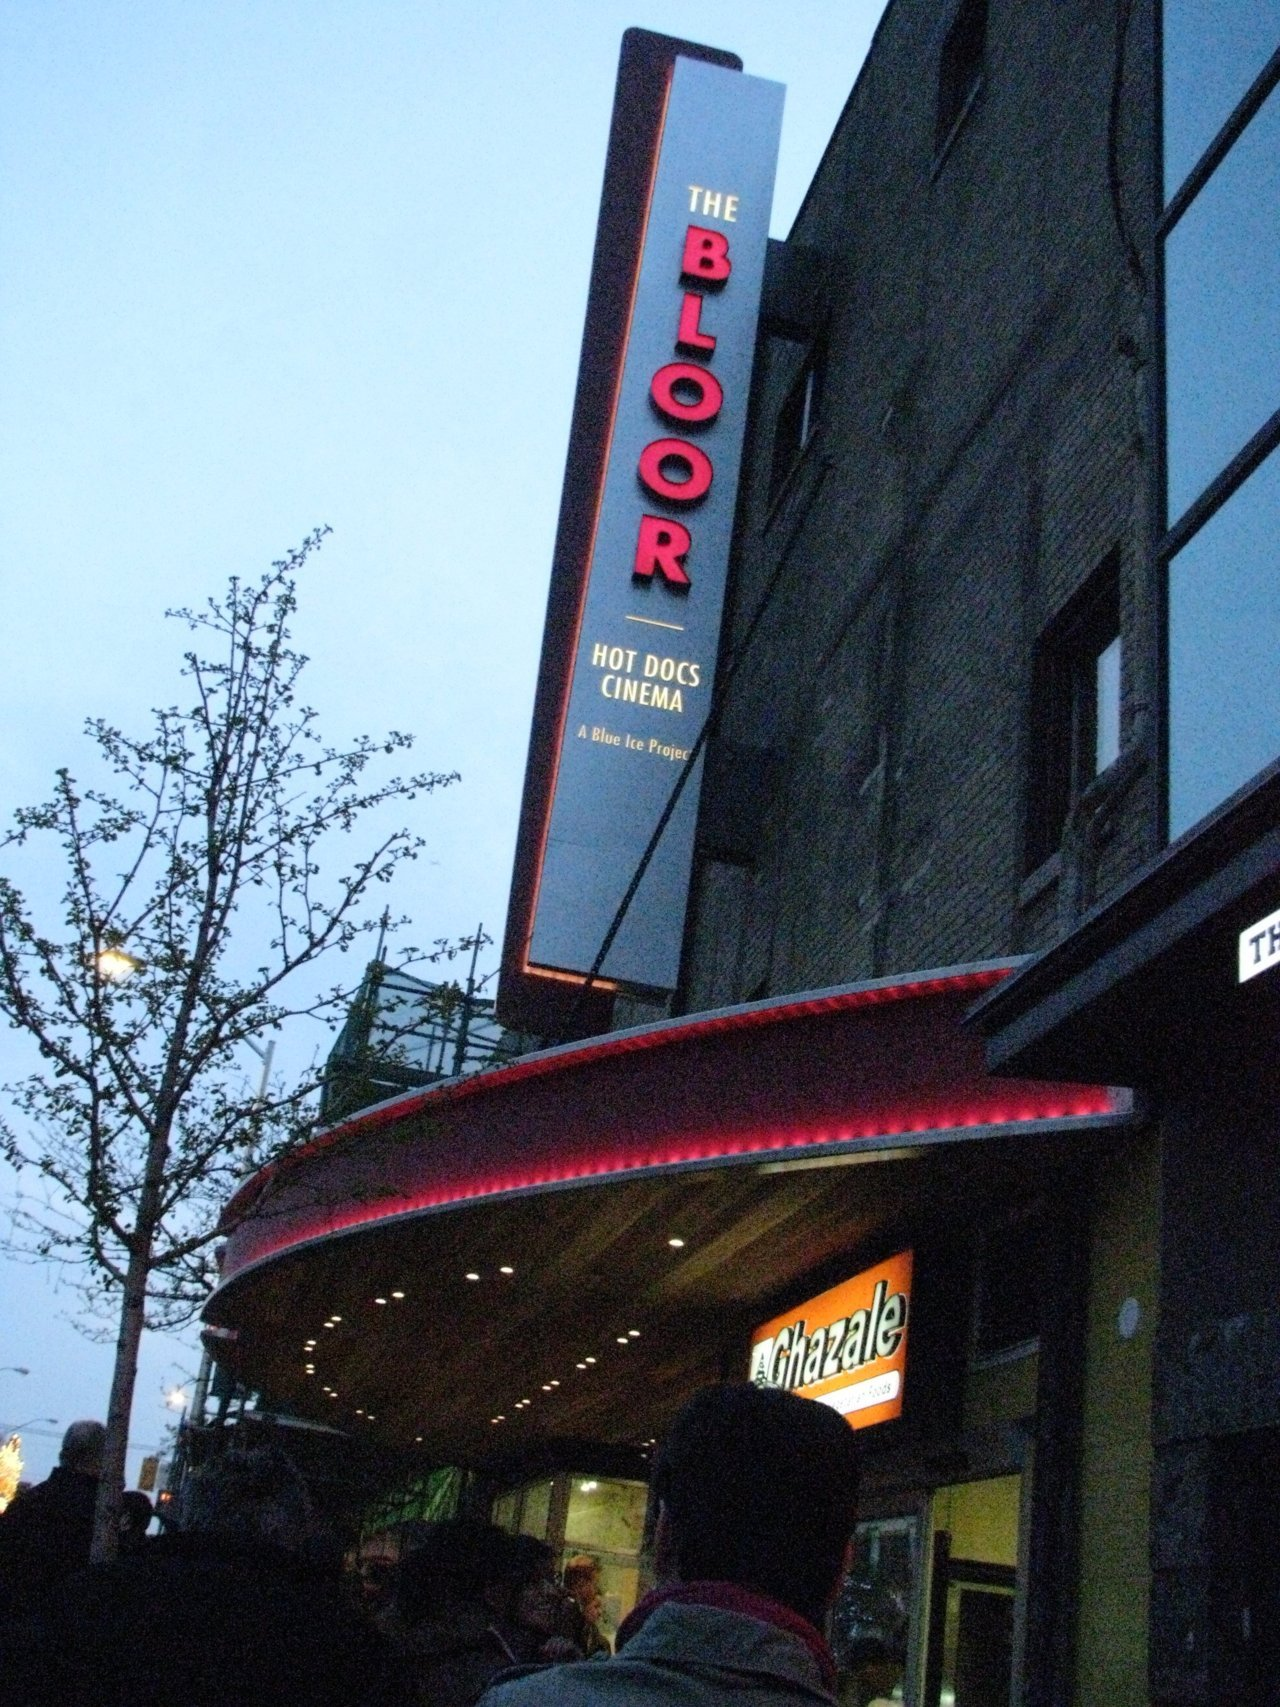 I was pleased to discover the Bloor Cinema is still in the movie business … with a face lift and rebirth as the home of the Toronto hotDOCs Festival, On now